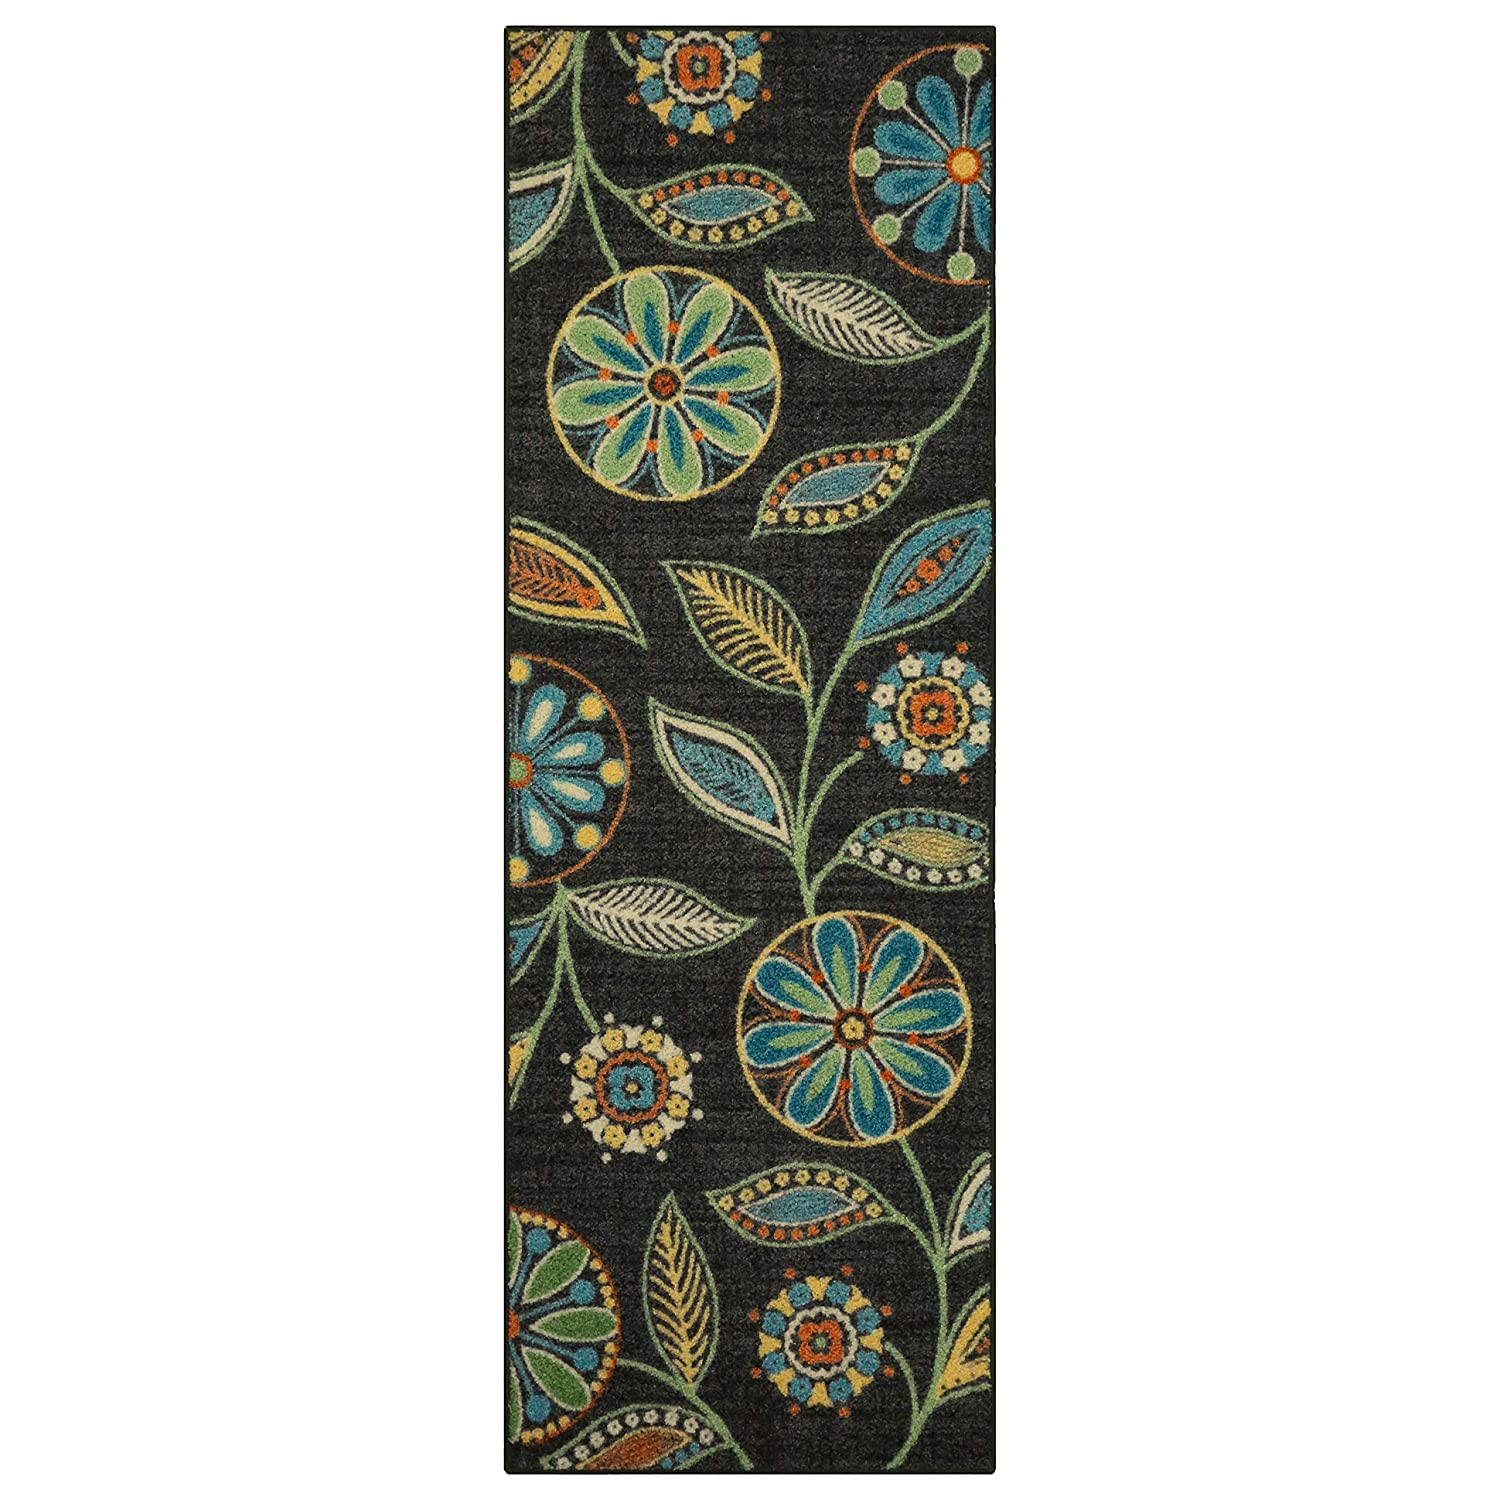 Maples Rugs Runner Rug - Reggie Artwork Collection 2 x 6 Non Skid Hallway Carpet Entry Rugs Runners [Made in USA] for Kitchen and Entryway, 2